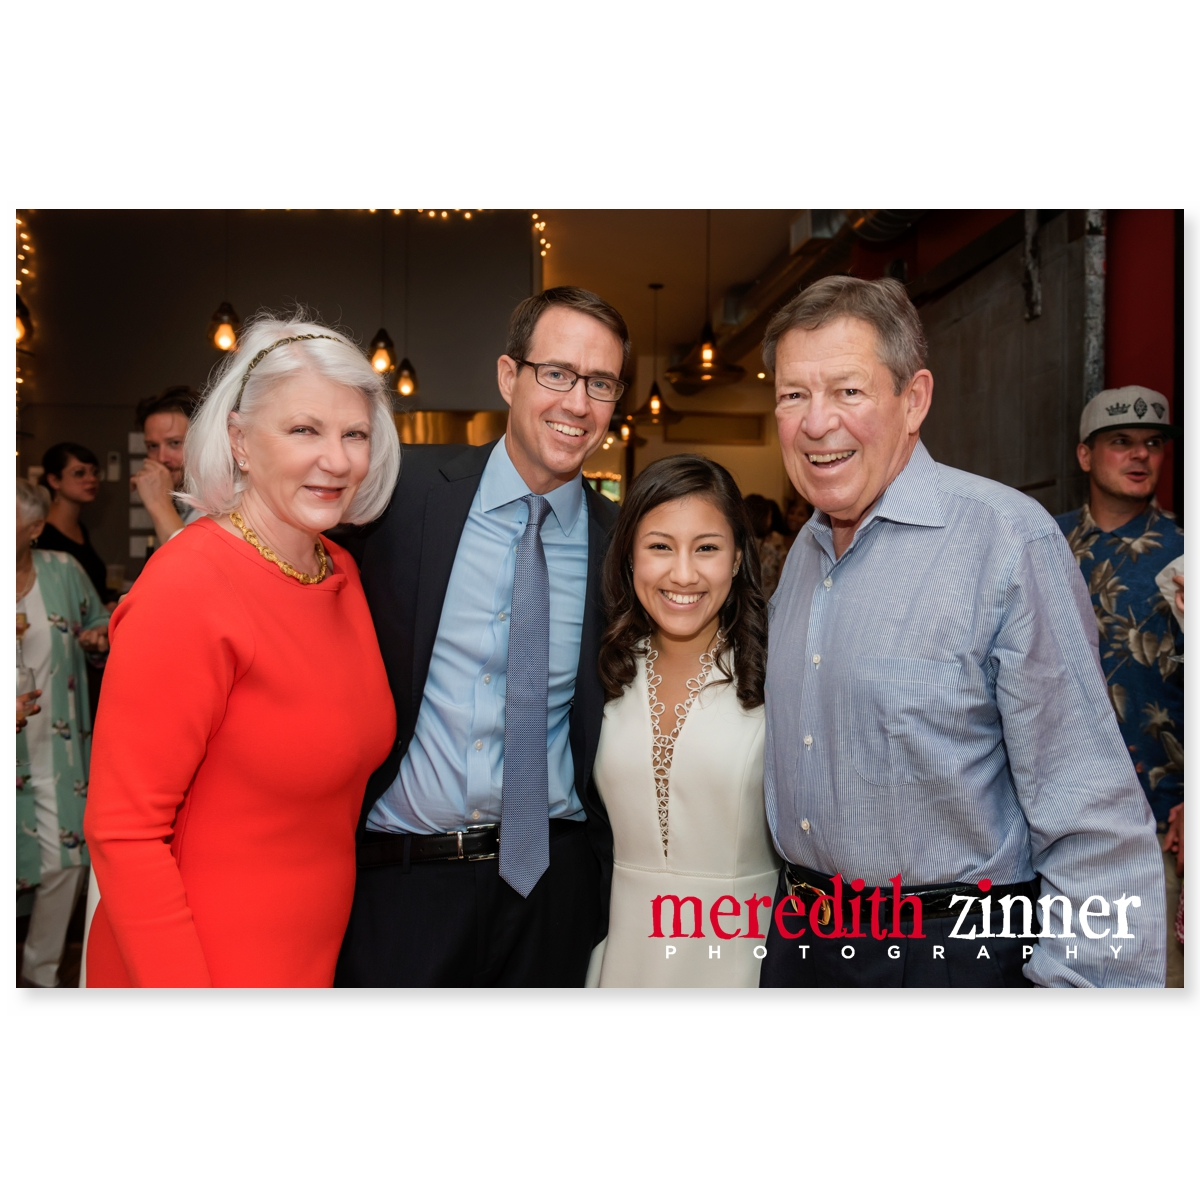 Meredith_Zinner_Photography_StilesCelebration_0111